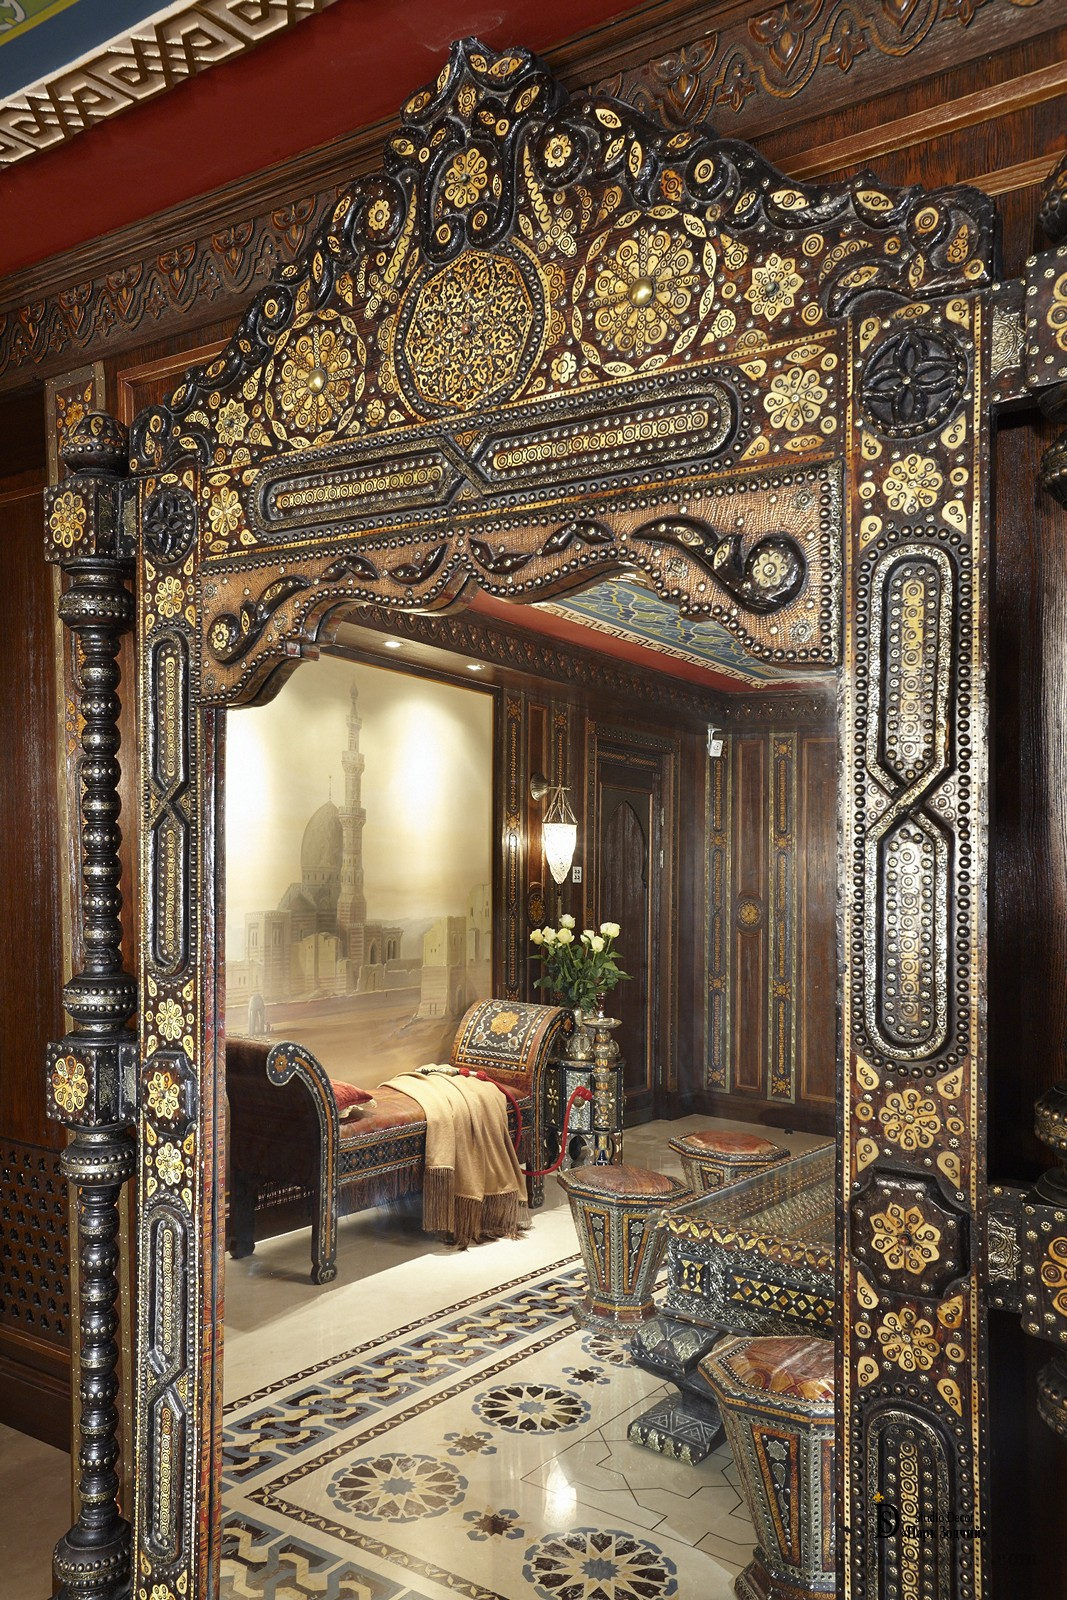 Mirror in carved frame, finely inlaid and gives the living room a palatial grandeur of the middle ages